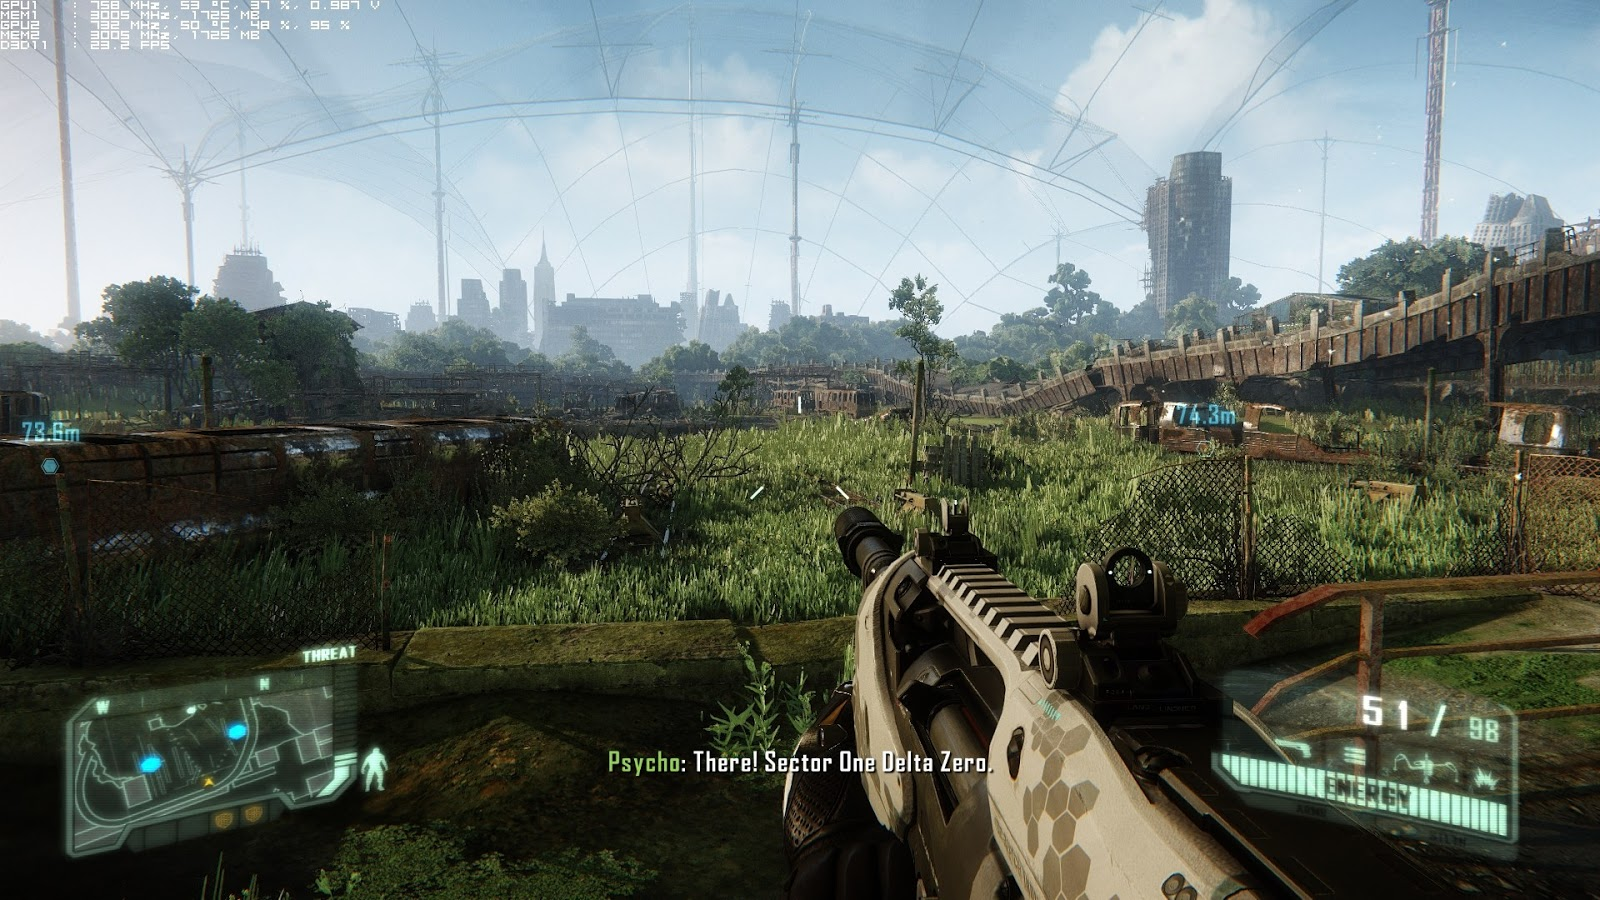 Download] game crysis 3 shooter   100% free [new] full version.